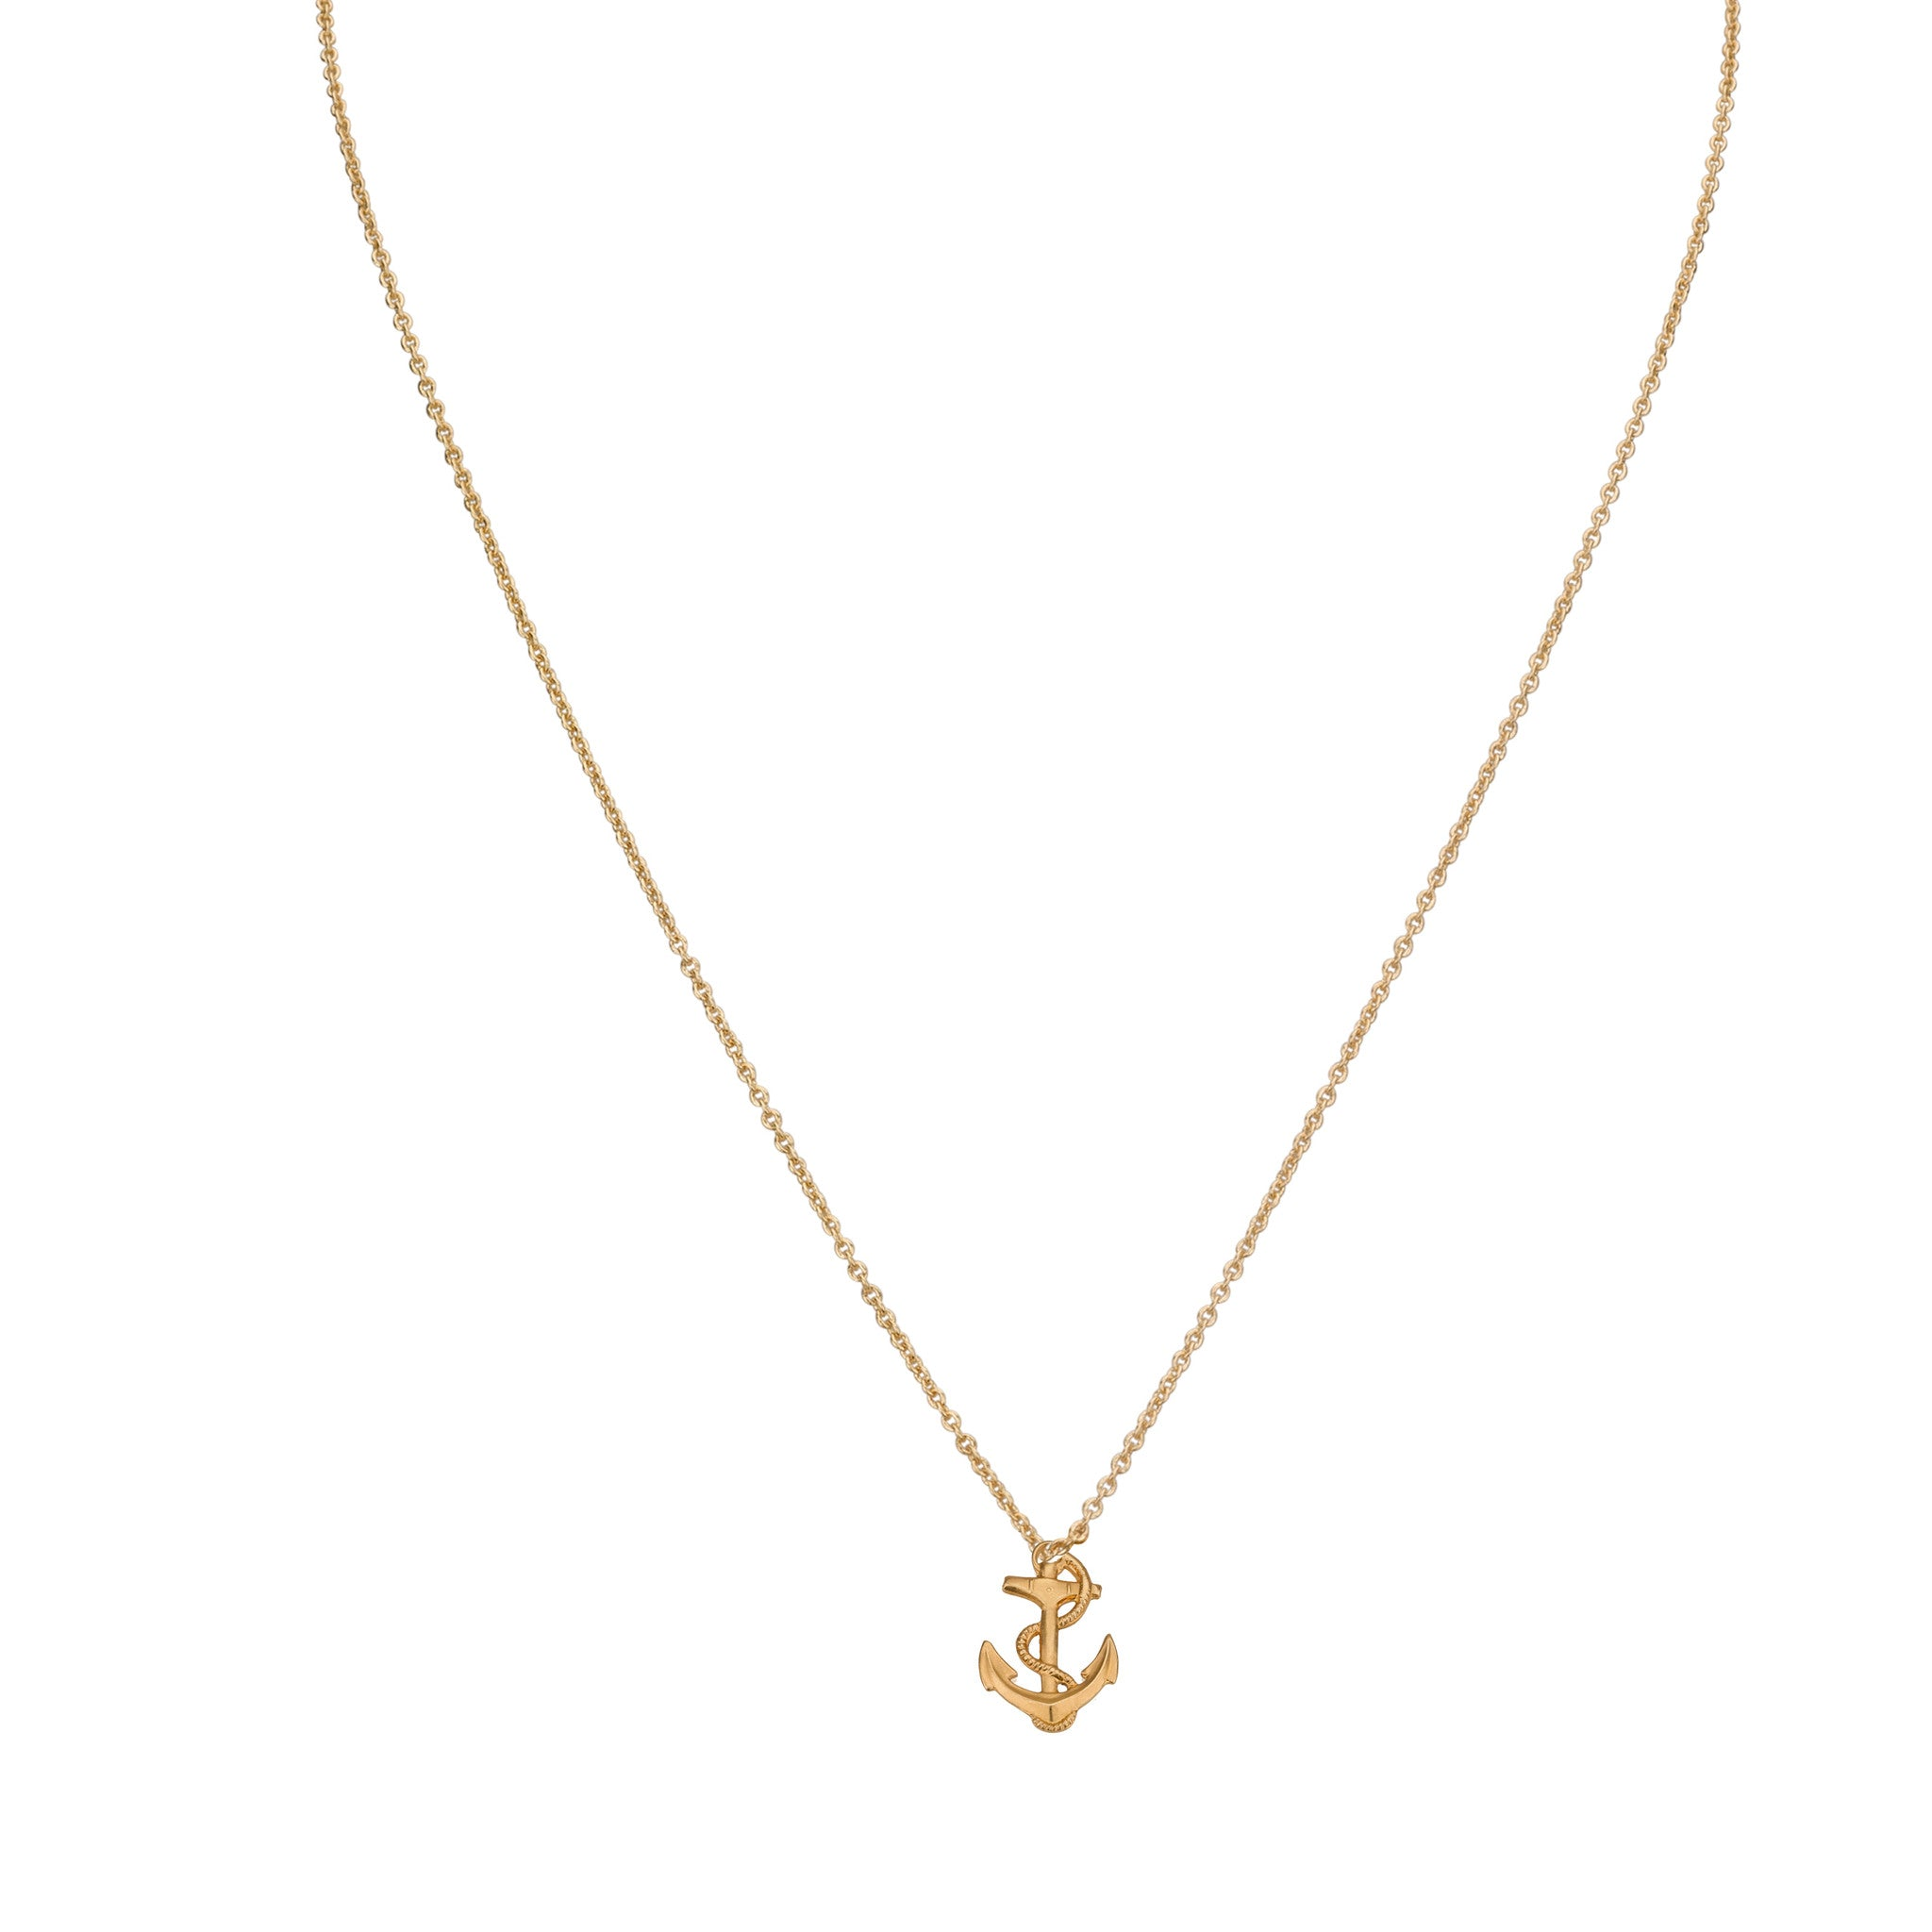 products anchor dsc necklace ways yellow gold chain pendant